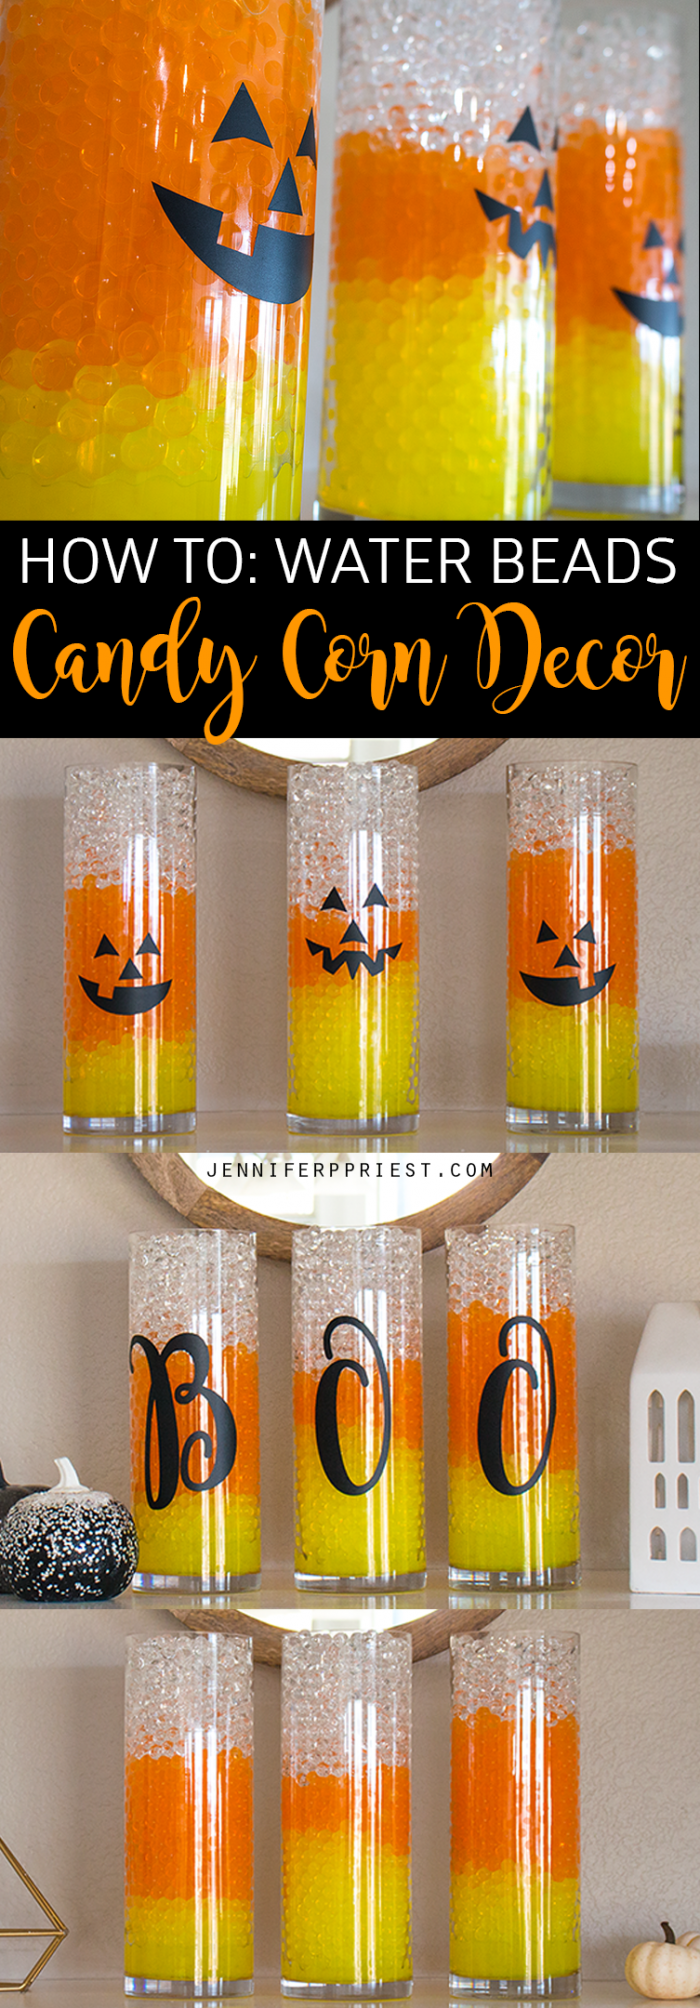 Candy Corn Vases! Halloween Decor is easy with GEMNIQUE Water Beads. See how to make this display for under $15! [AD]